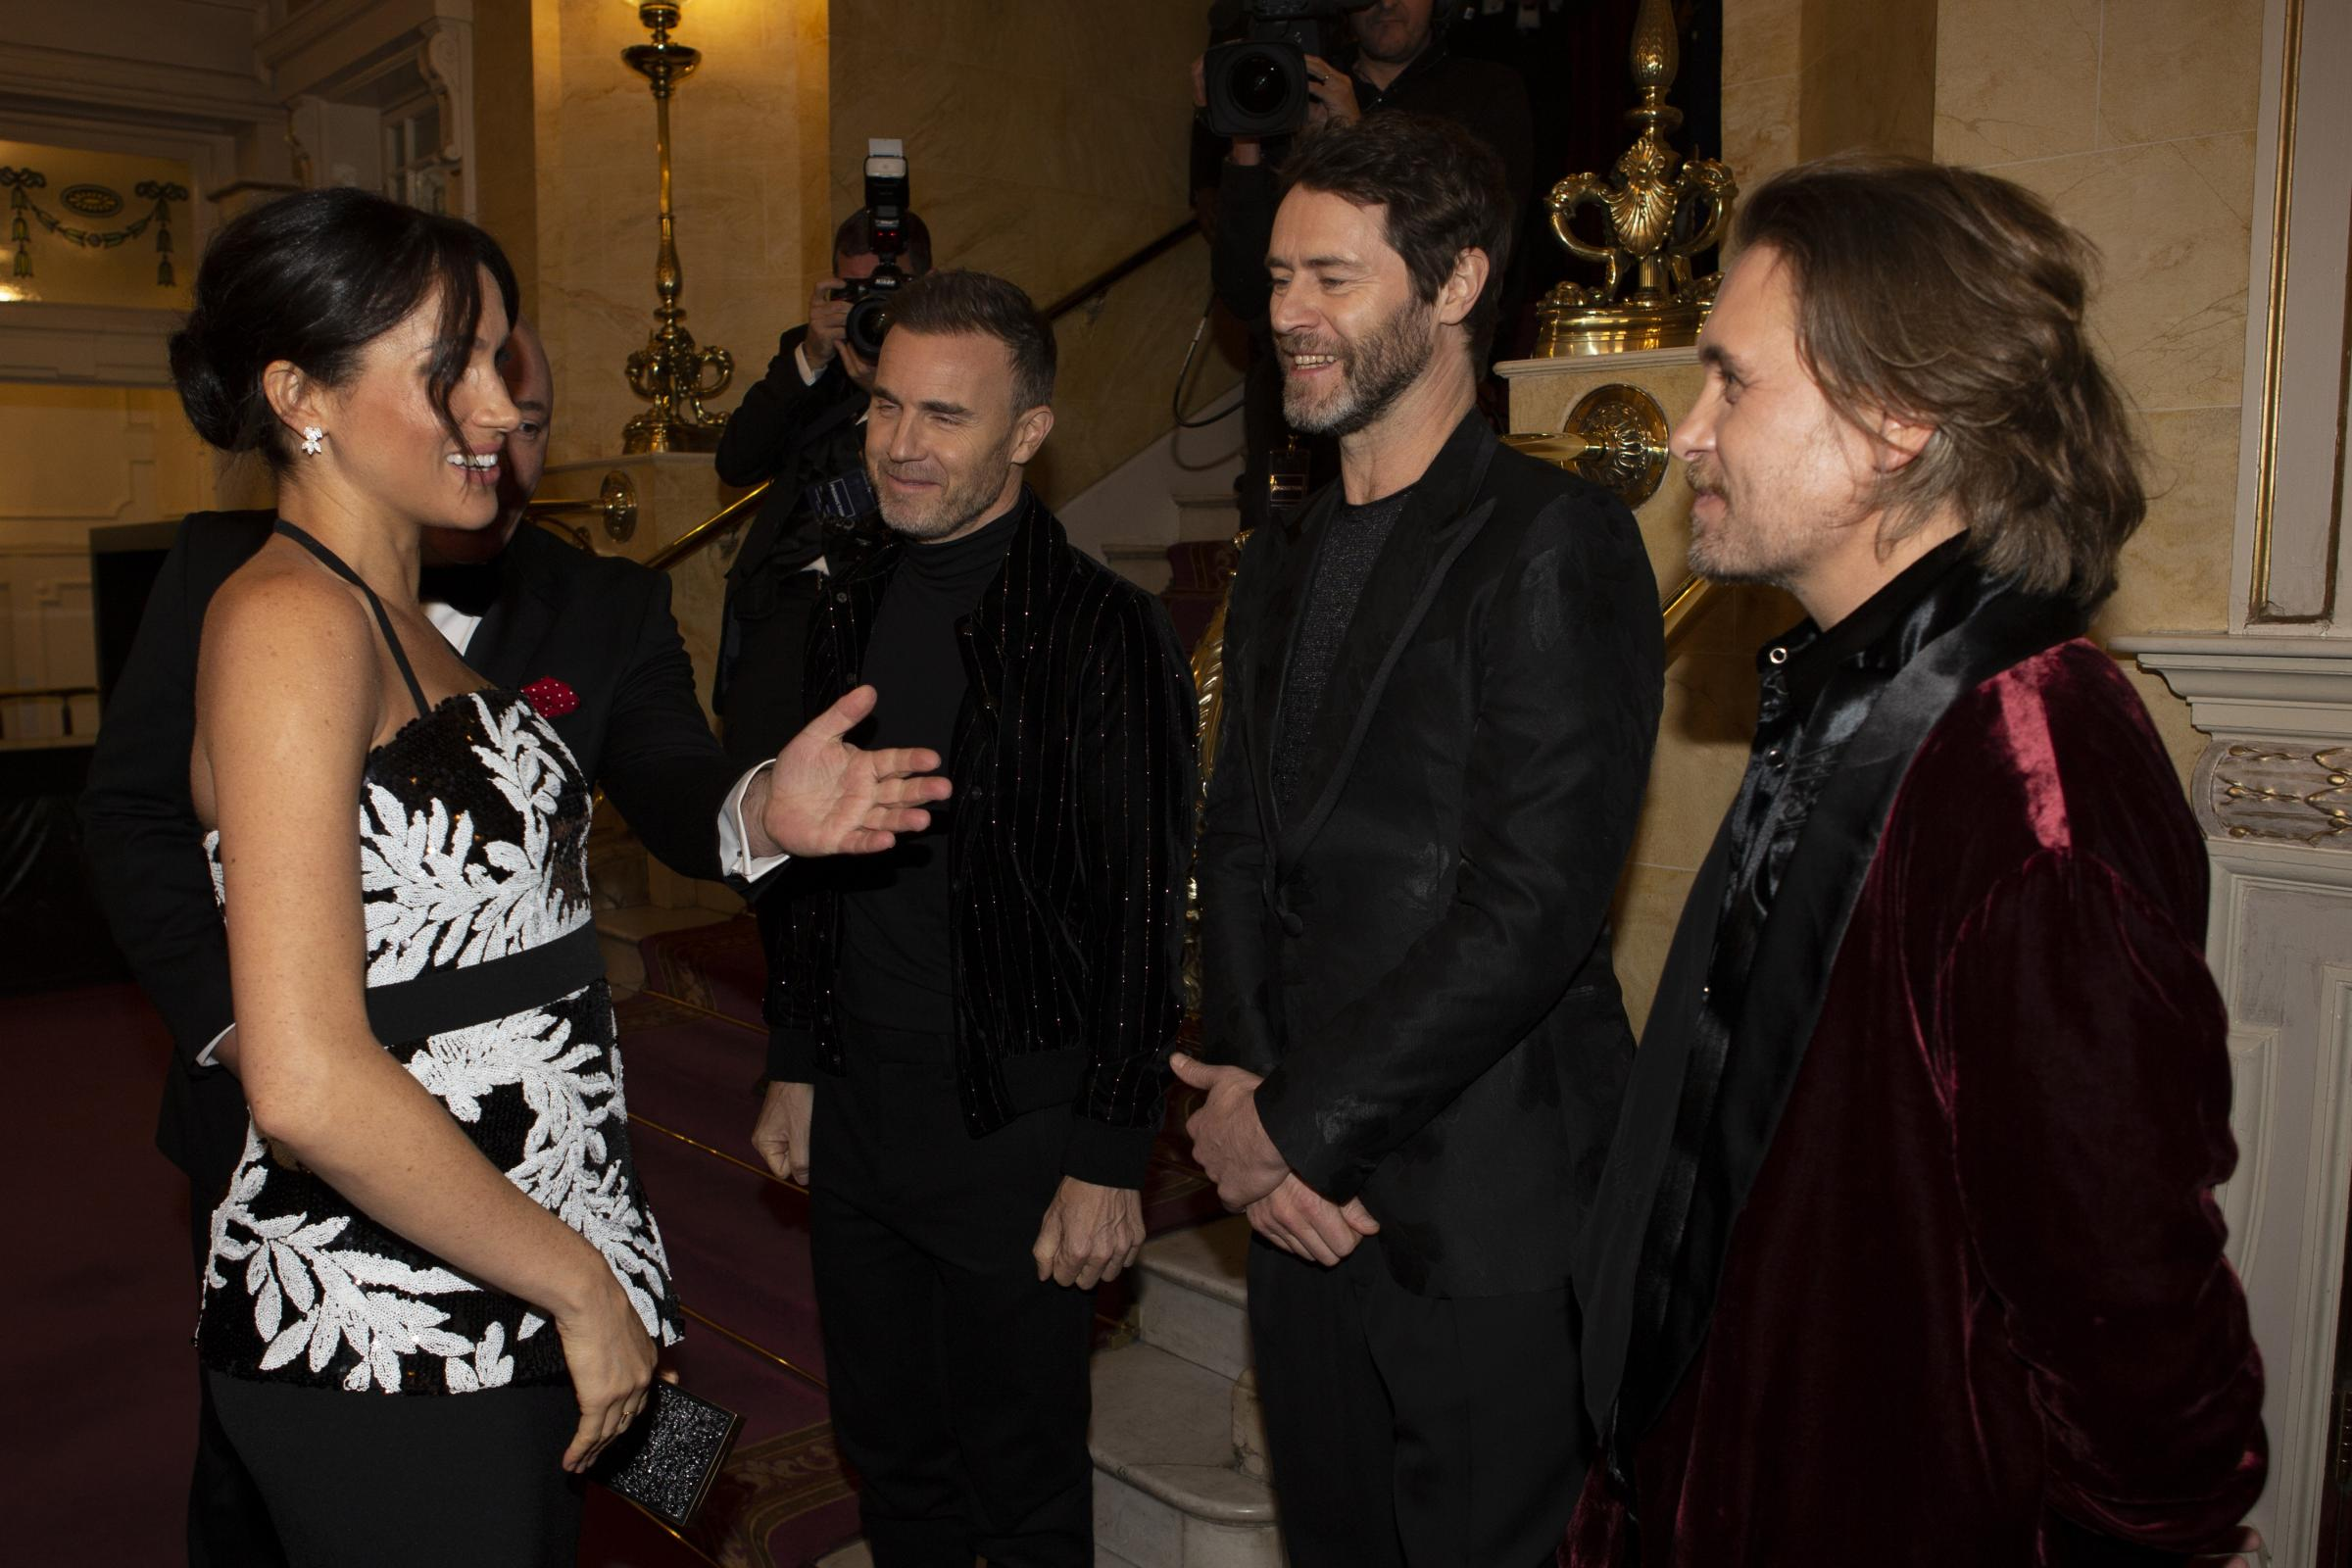 Meghan welcomed by Take That as she makes Royal Variety debut